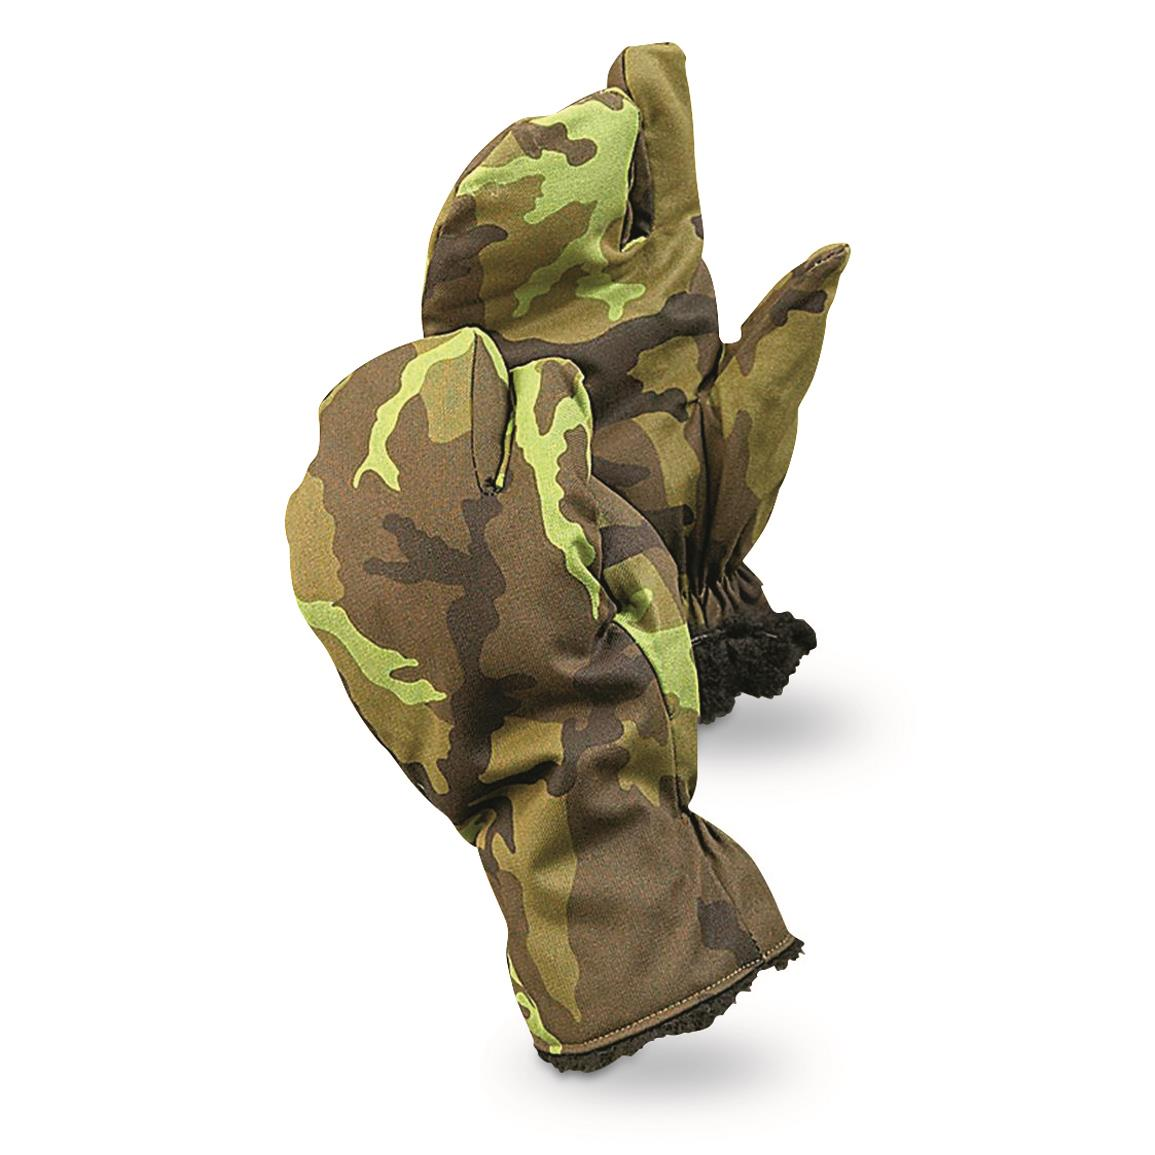 Czech Military Surplus M95 Camo Trigger Mitts, 3 Pack, Like-New, Woodland